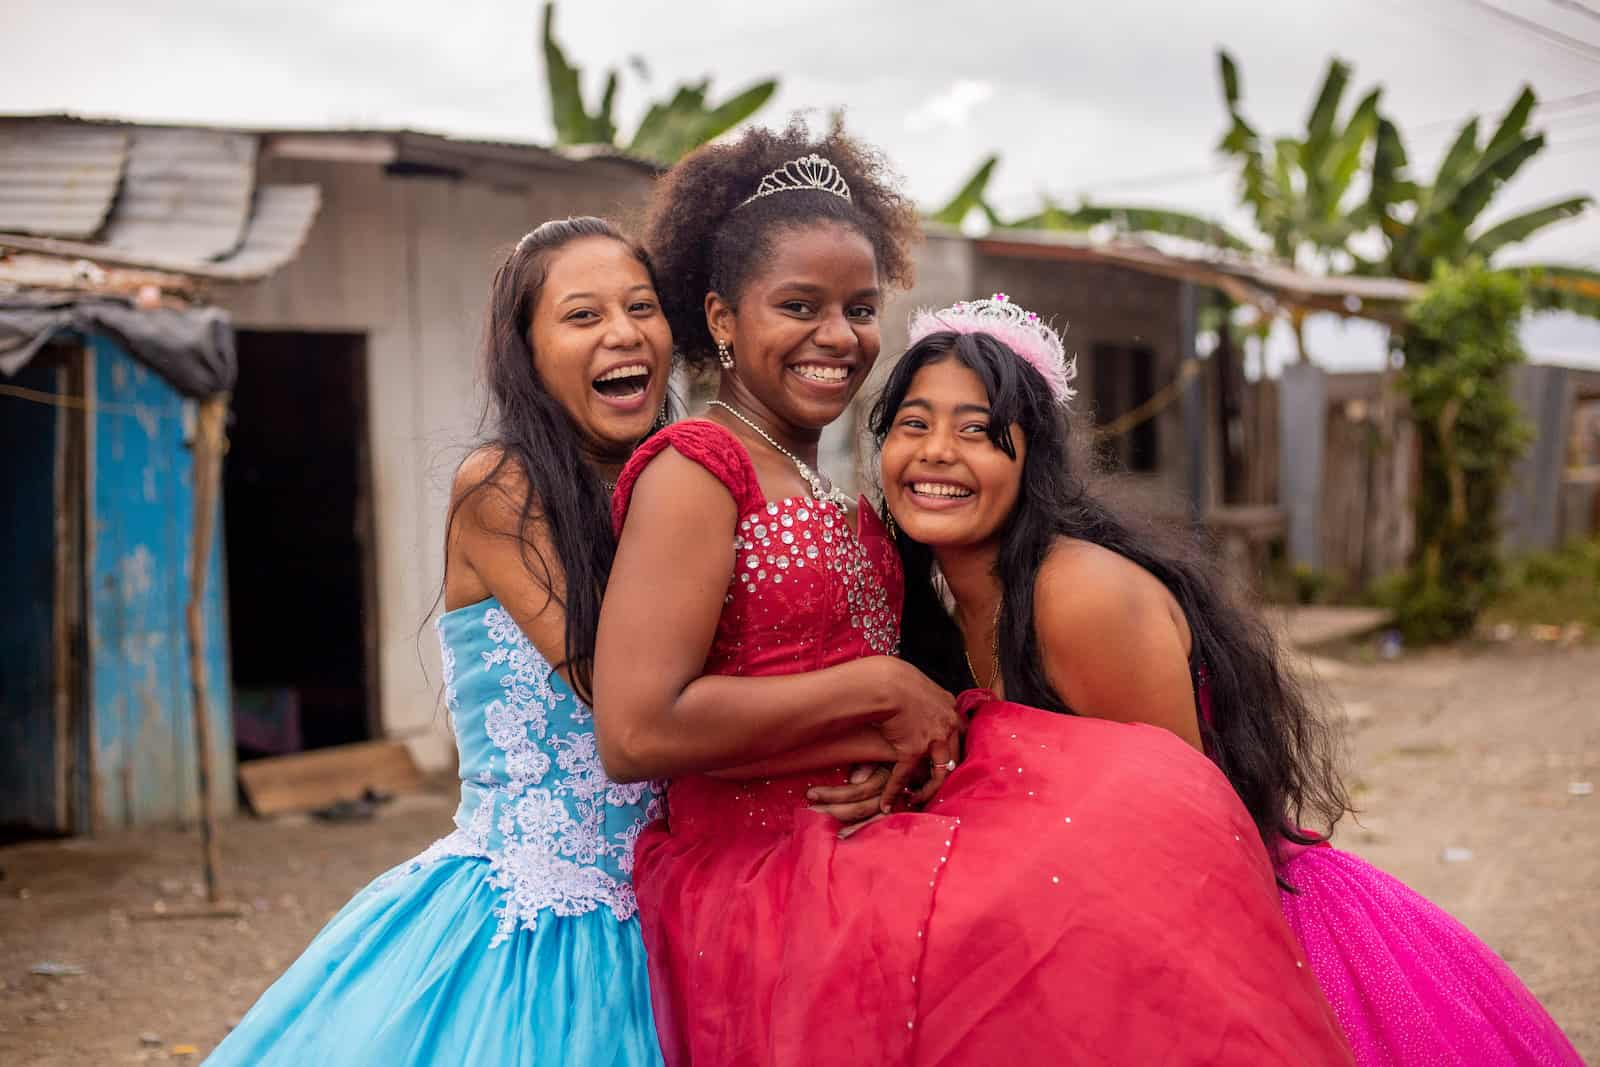 Three teenage girls celebrating a birthday tradition, the Quinceañera, in ballgowns hug, smiling and laughing.